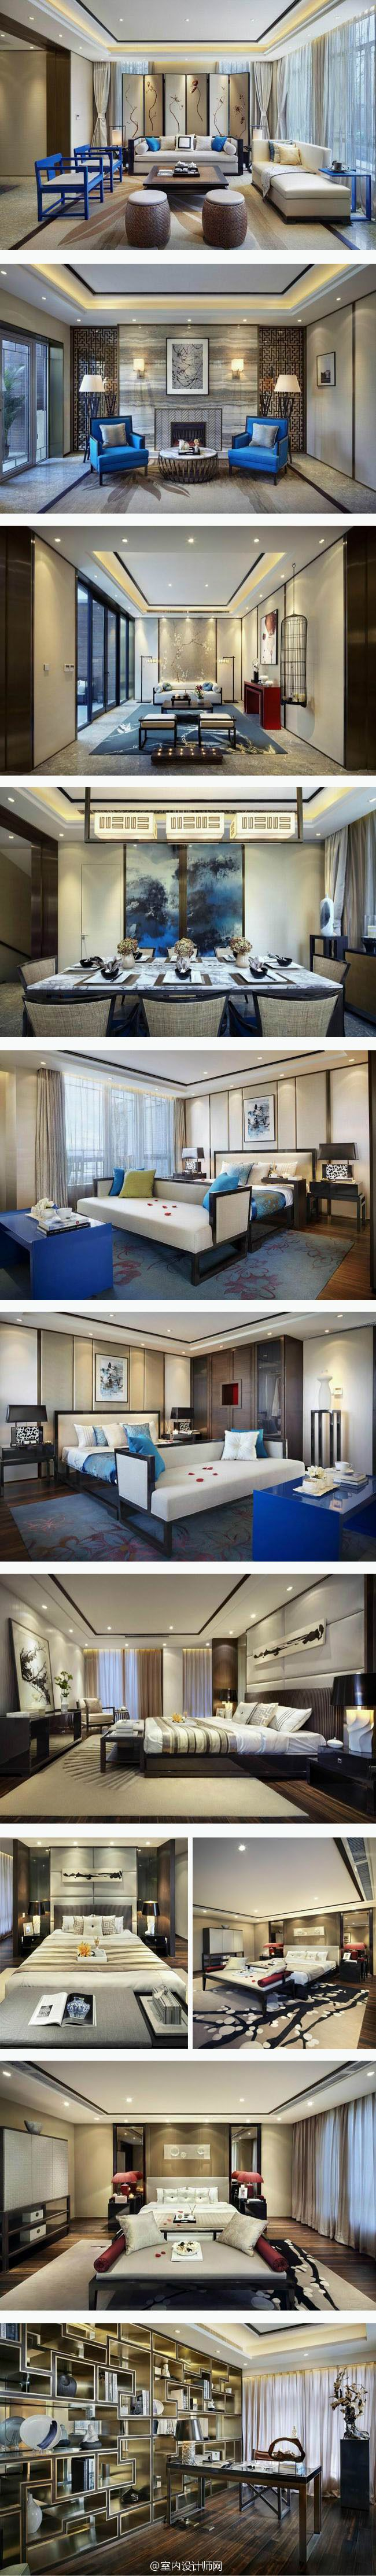 interior design harmony - 1000+ images about Interior design: SIN on Pinterest hinese ...